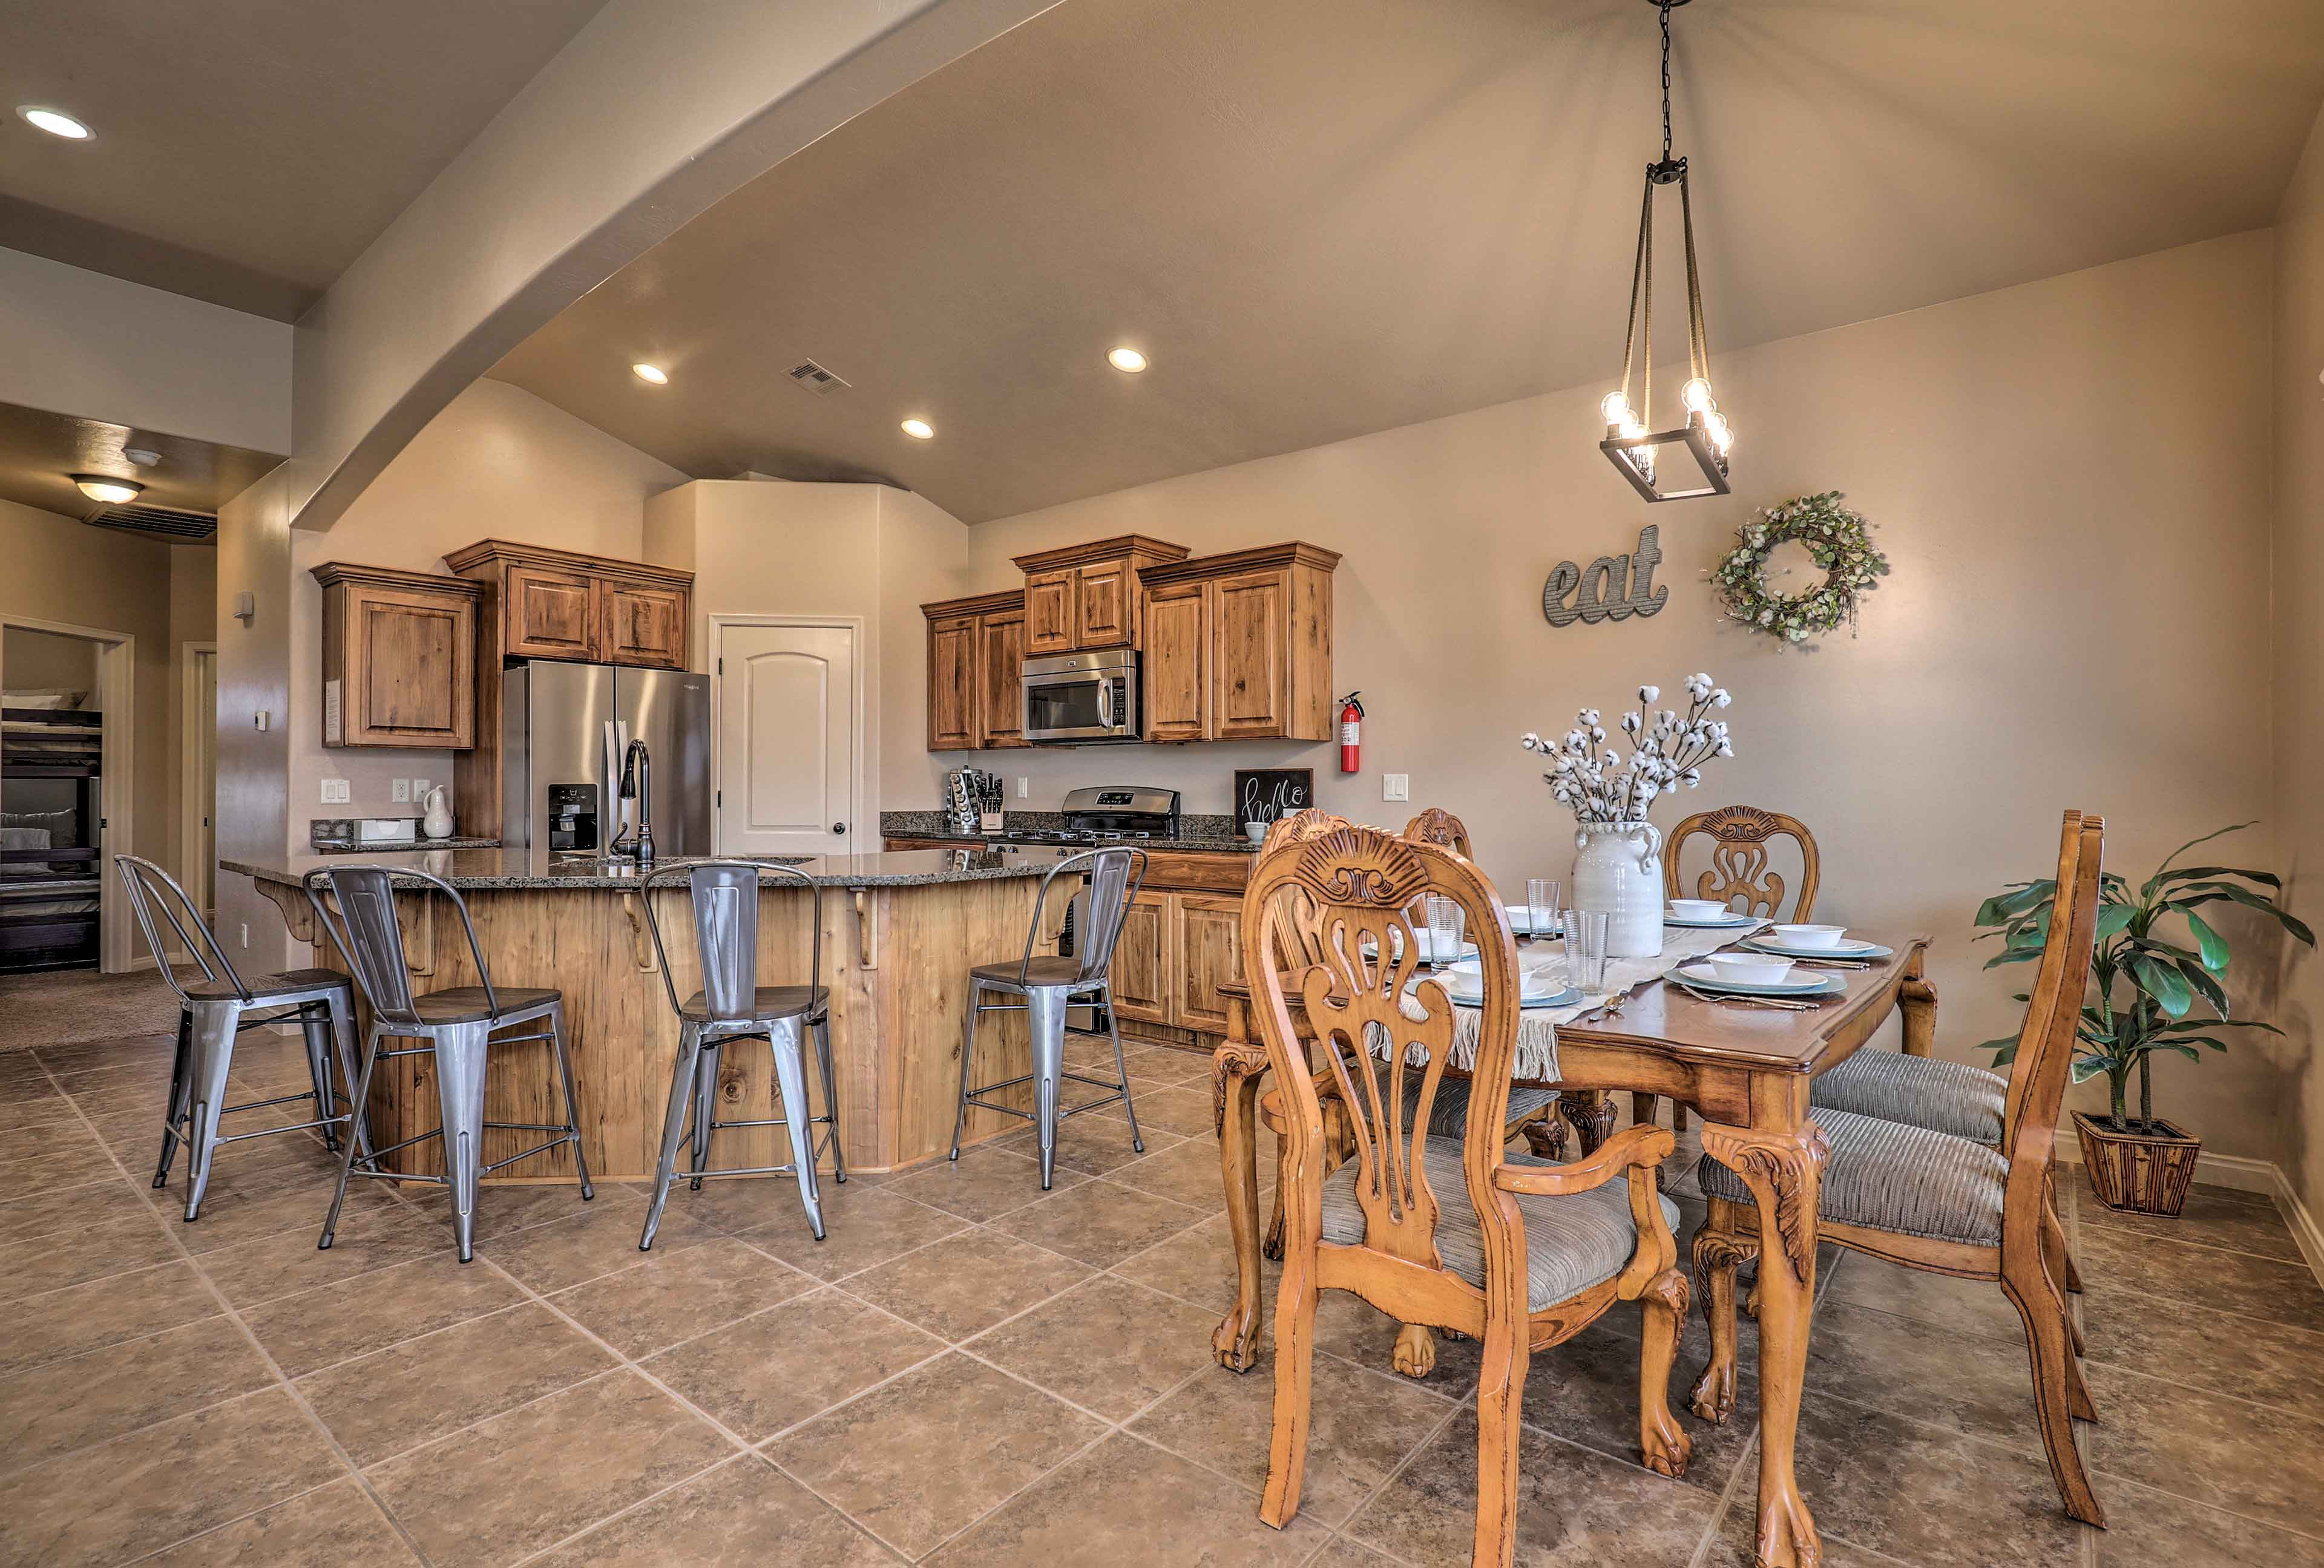 The interior features 2,600 square feet of living space - plenty of room for 13!